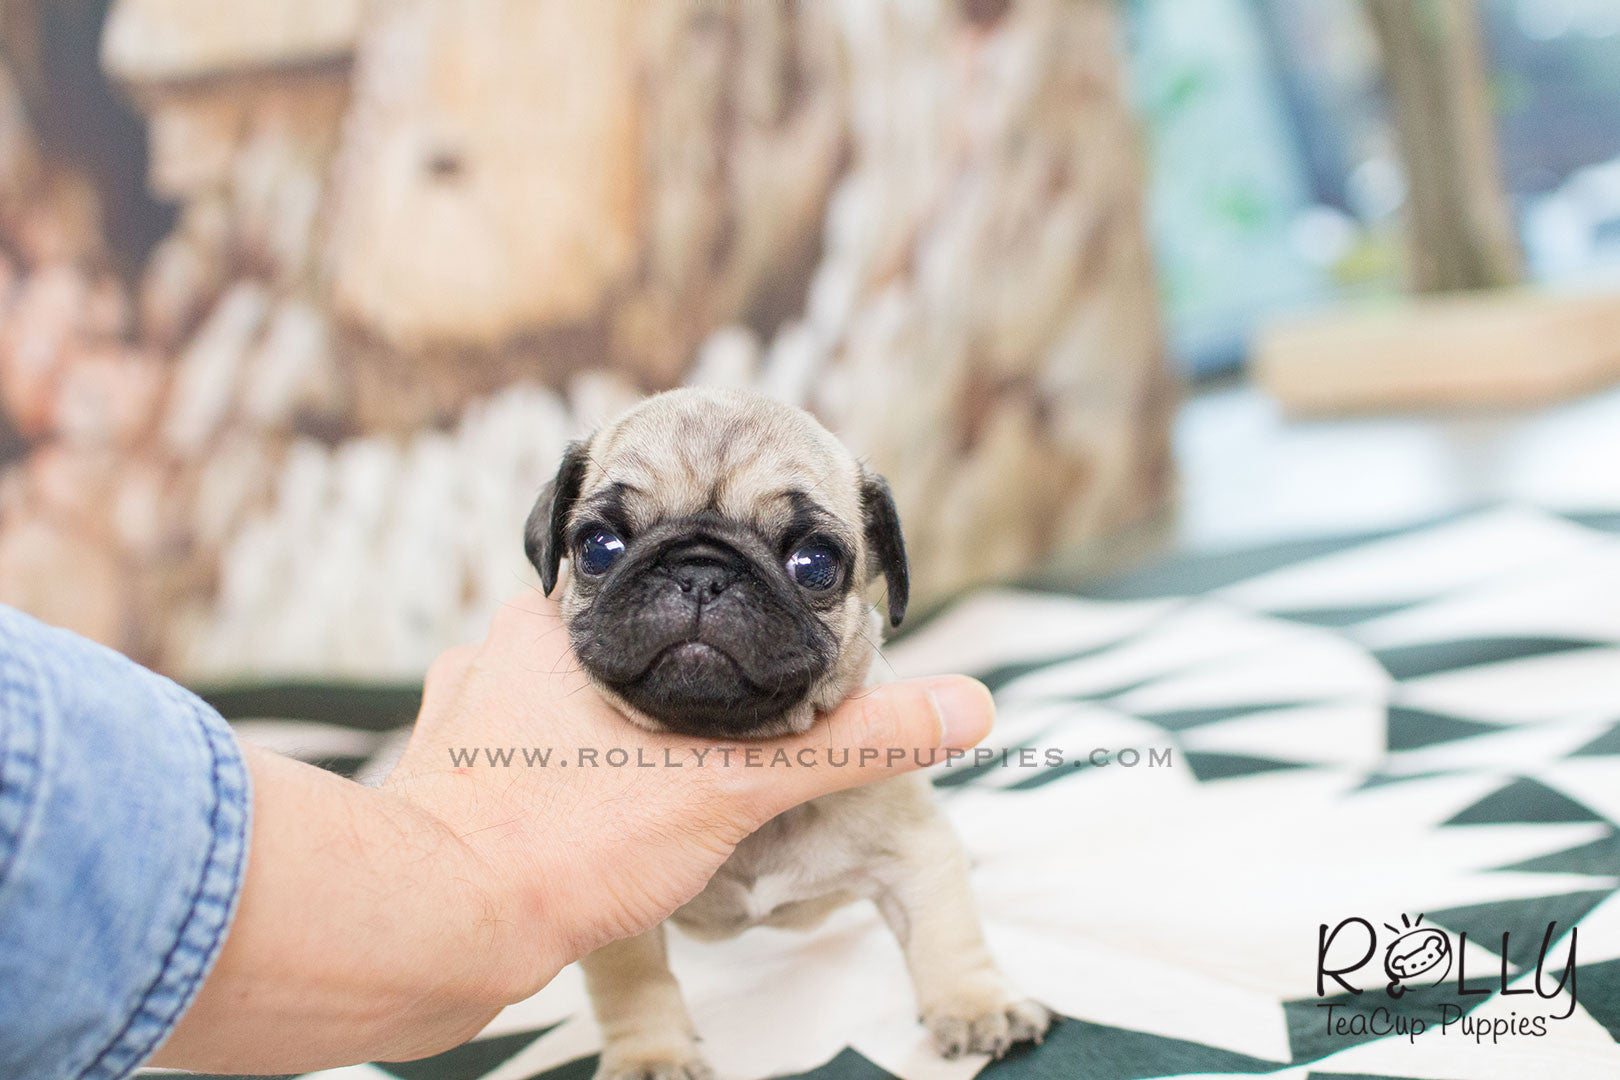 lola the pug lola pug f rolly teacup puppies 2230